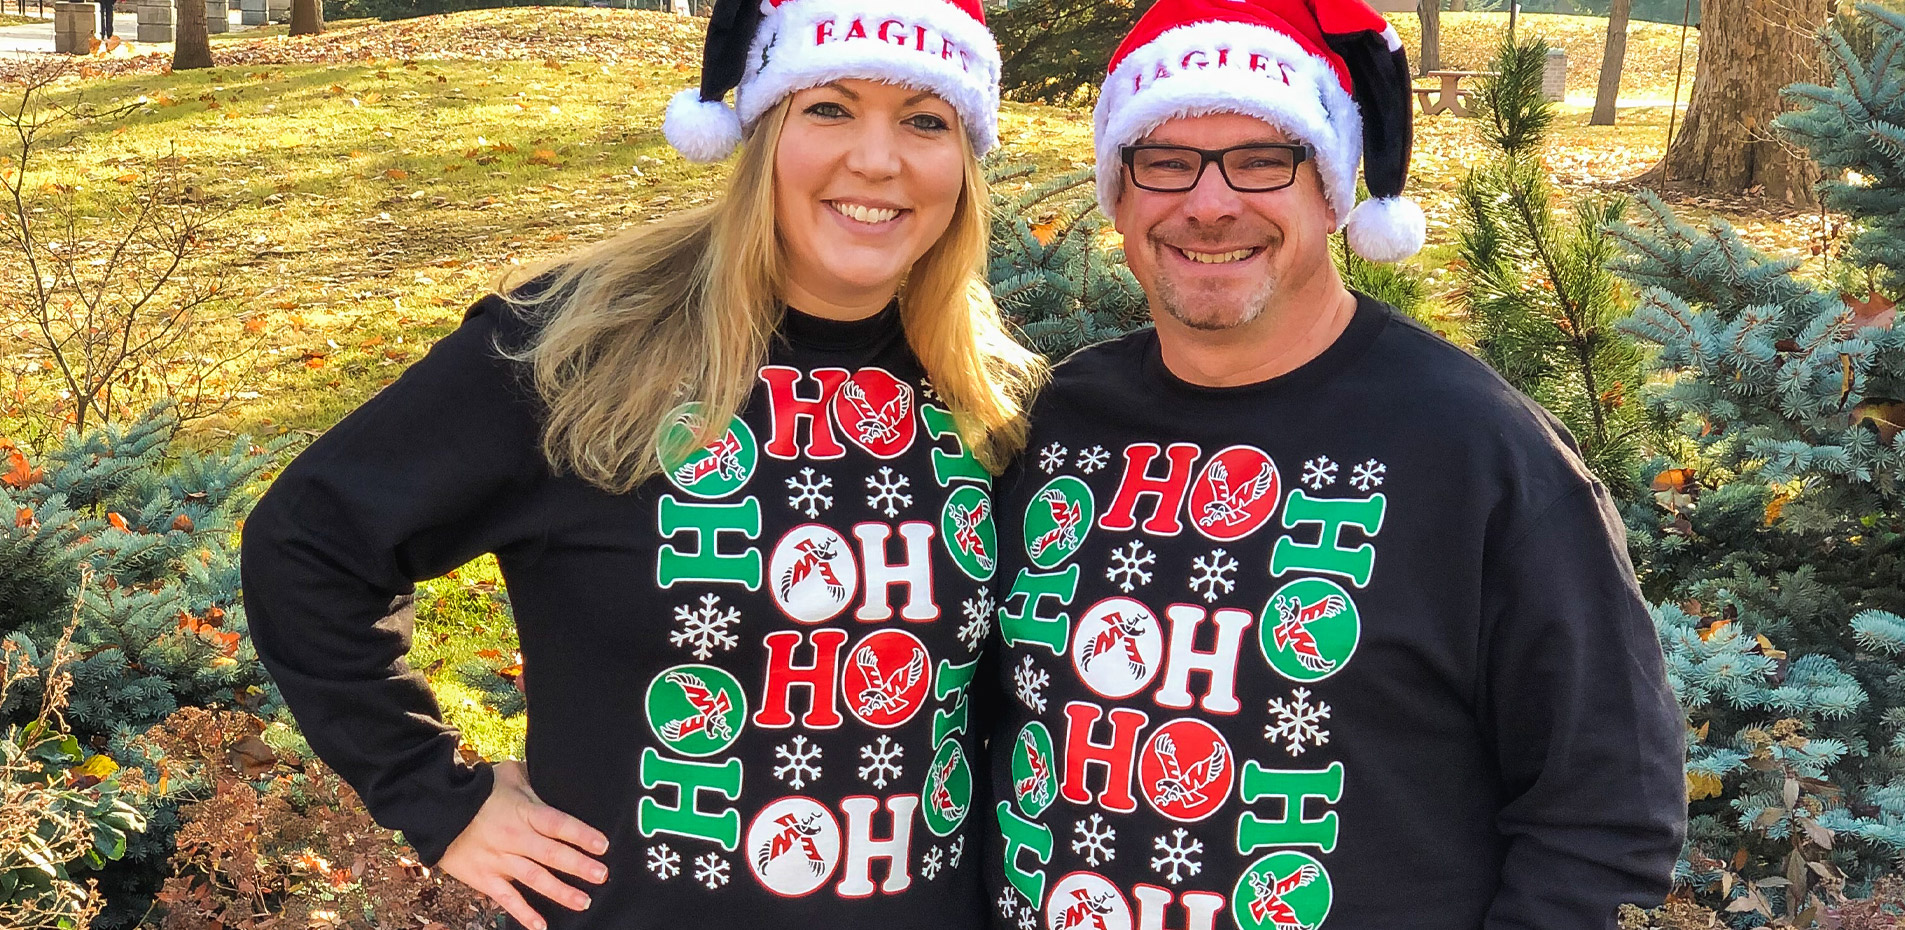 Two people wearing Eagles Holiday Sweaters